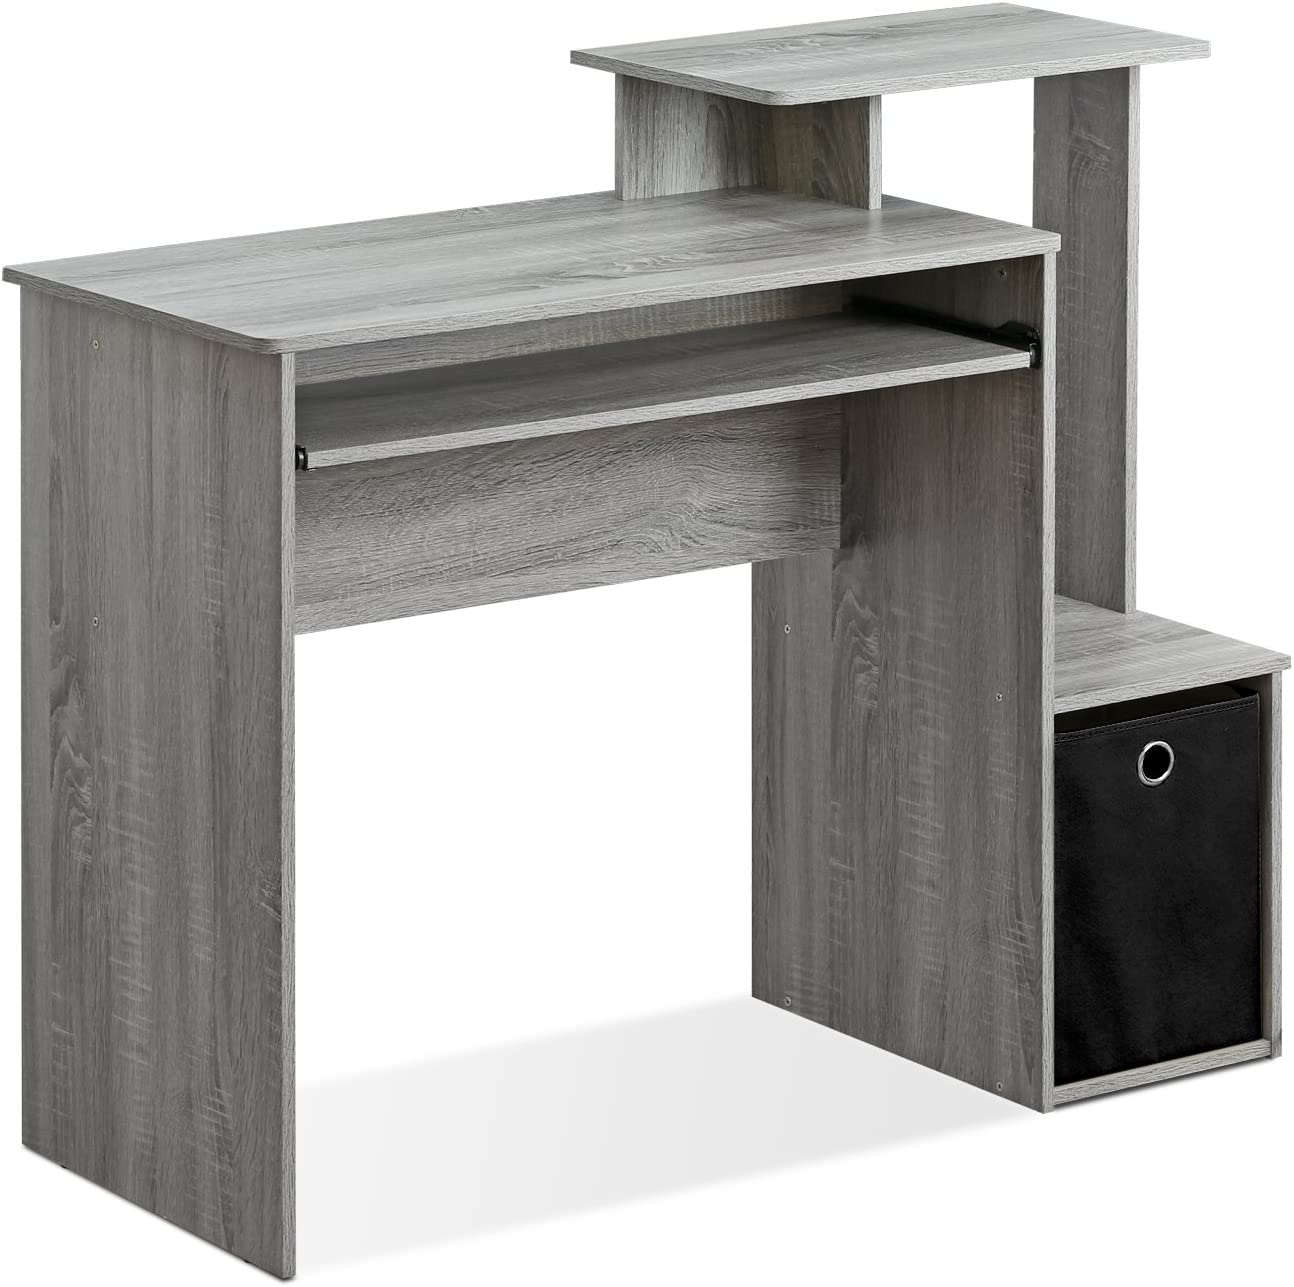 FURINNO Econ Multipurpose Home Office Computer Writing Desk, French Oak Grey: Furniture & Decor